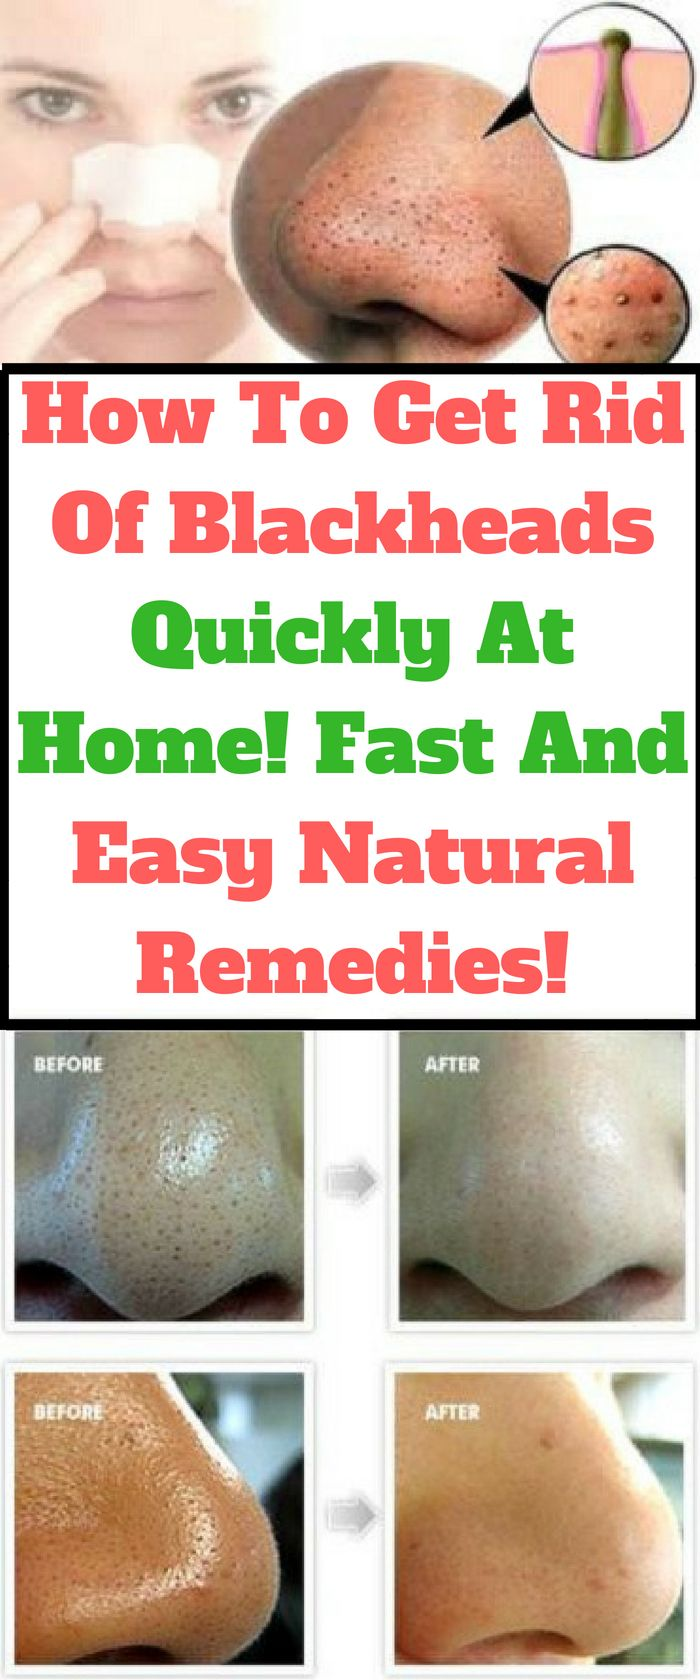 How To Get Rid Of Blackheads Quickly At Home! Fast And Easy Natural Remedies!